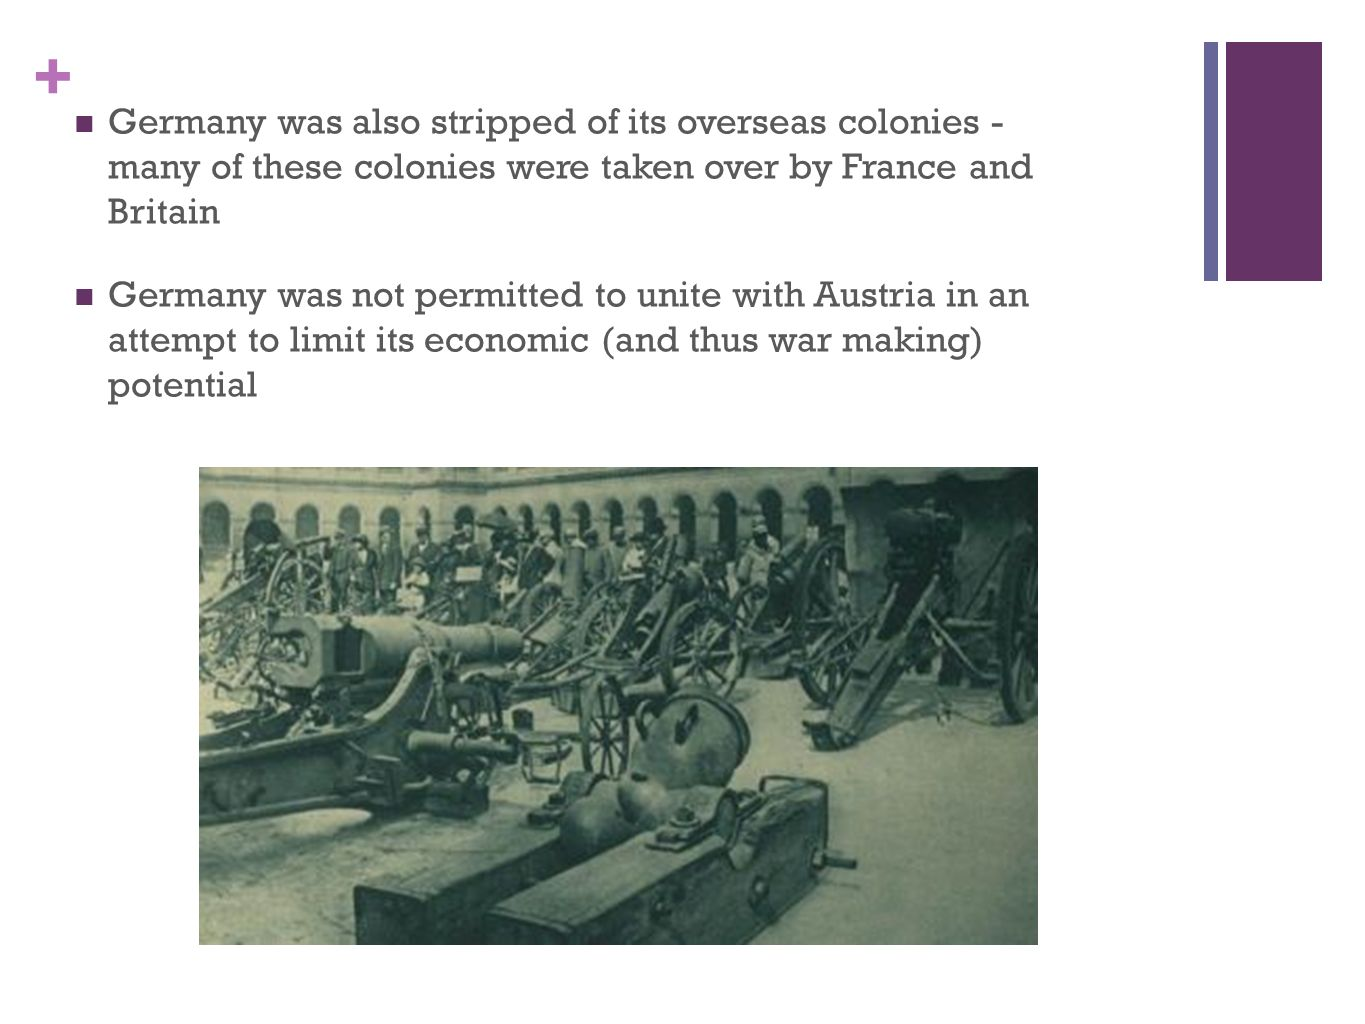 Germany was also stripped of its overseas colonies - many of these colonies were taken over by France and Britain